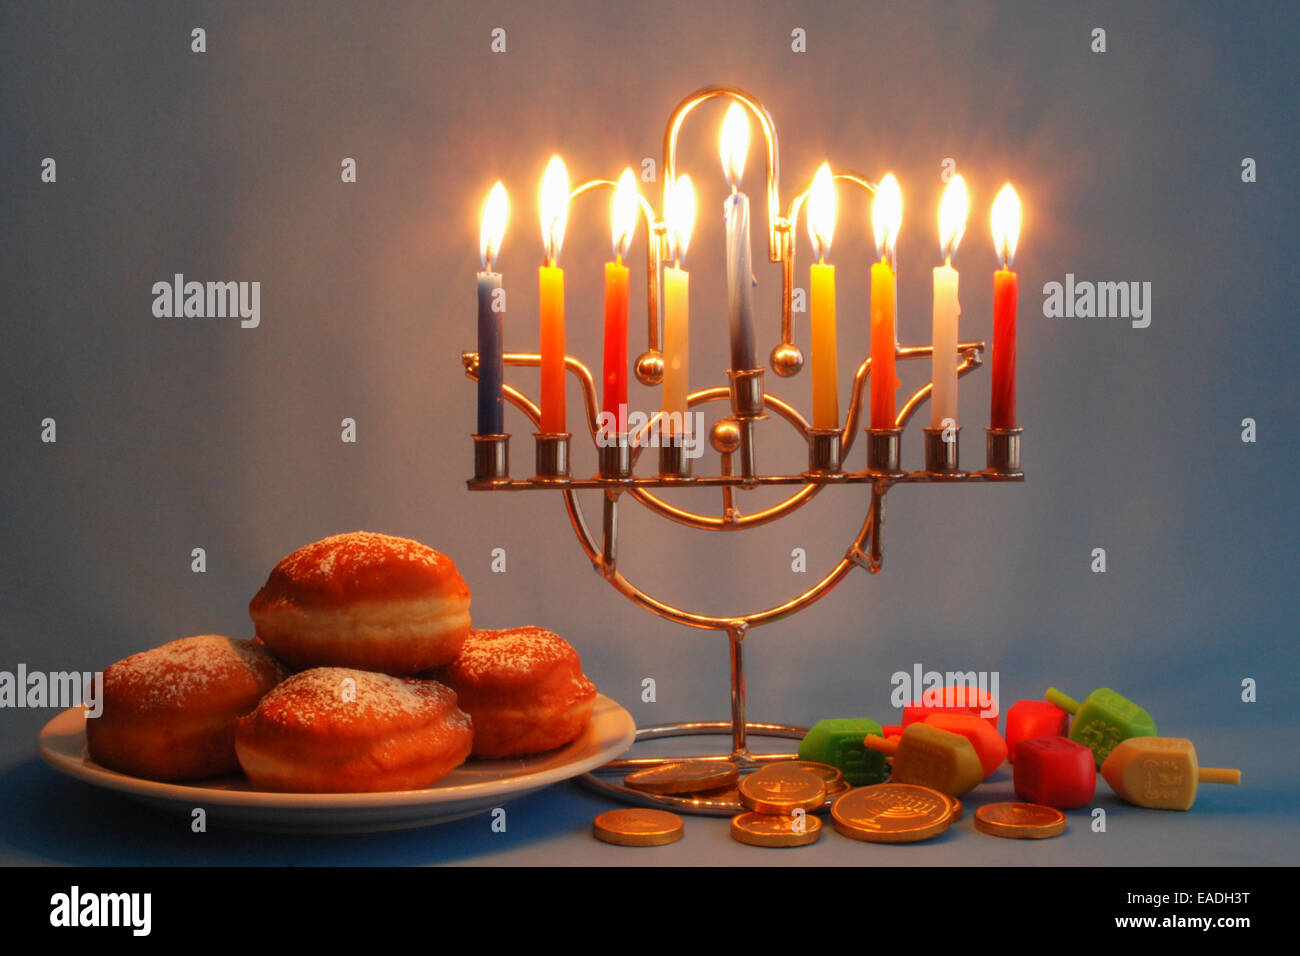 Symbols of hanukkah holyday menorah with candles donuts symbols of hanukkah holyday menorah with candles donuts dreidels and chocolate coins buycottarizona Images